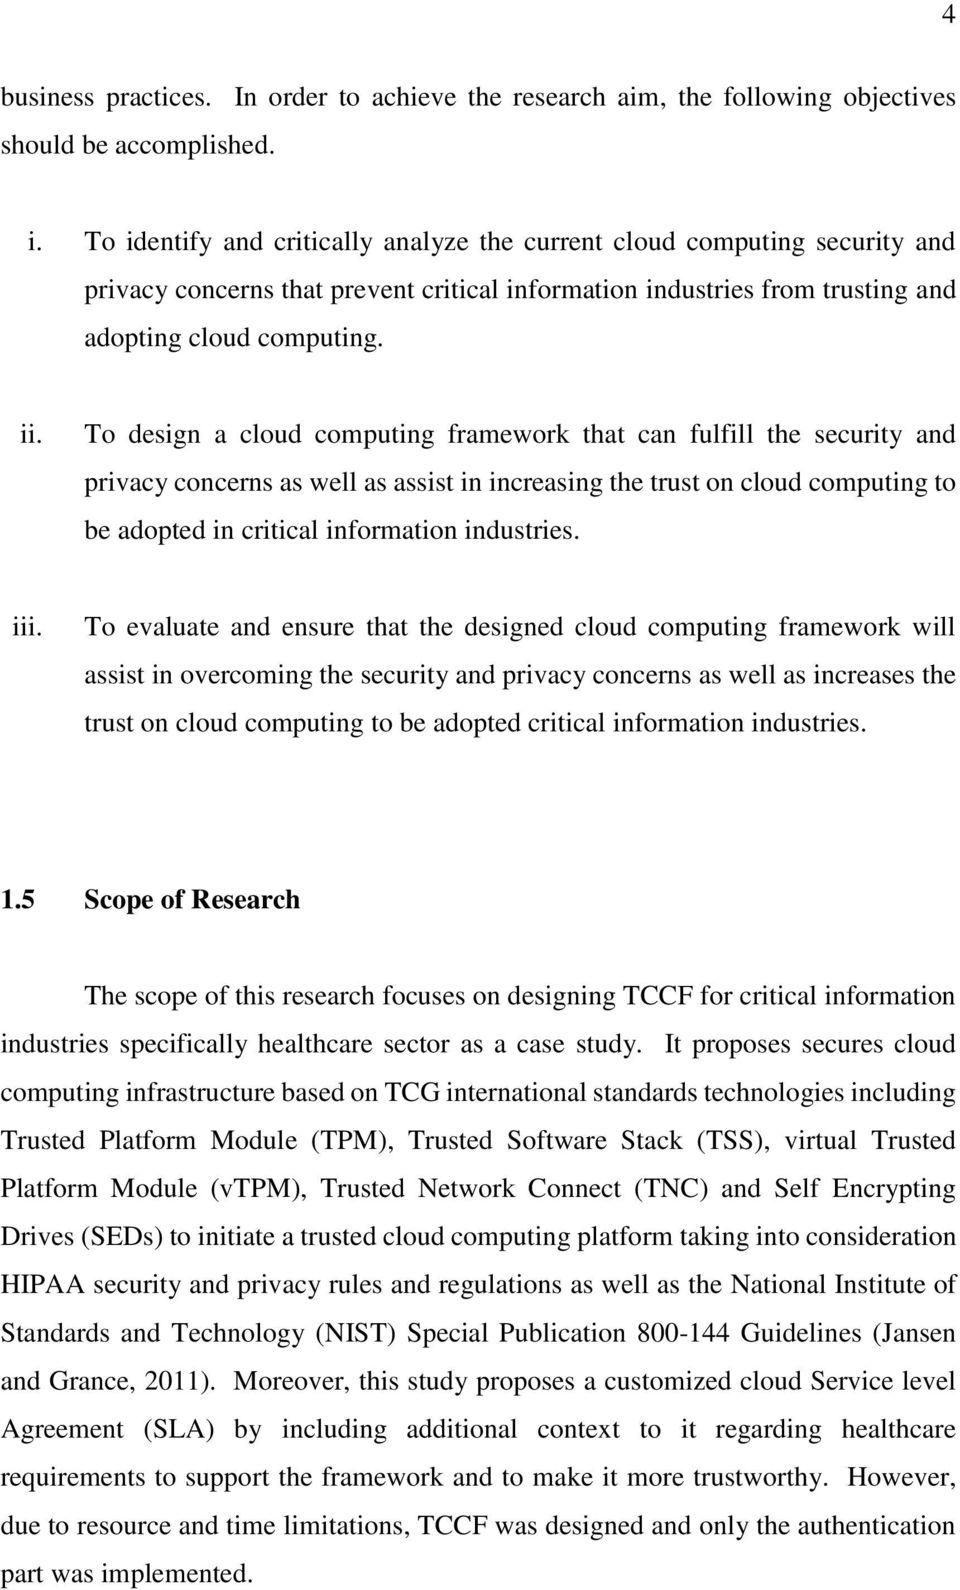 To design a cloud computing framework that can fulfill the security and privacy concerns as well as assist in increasing the trust on cloud computing to be adopted in critical information industries.